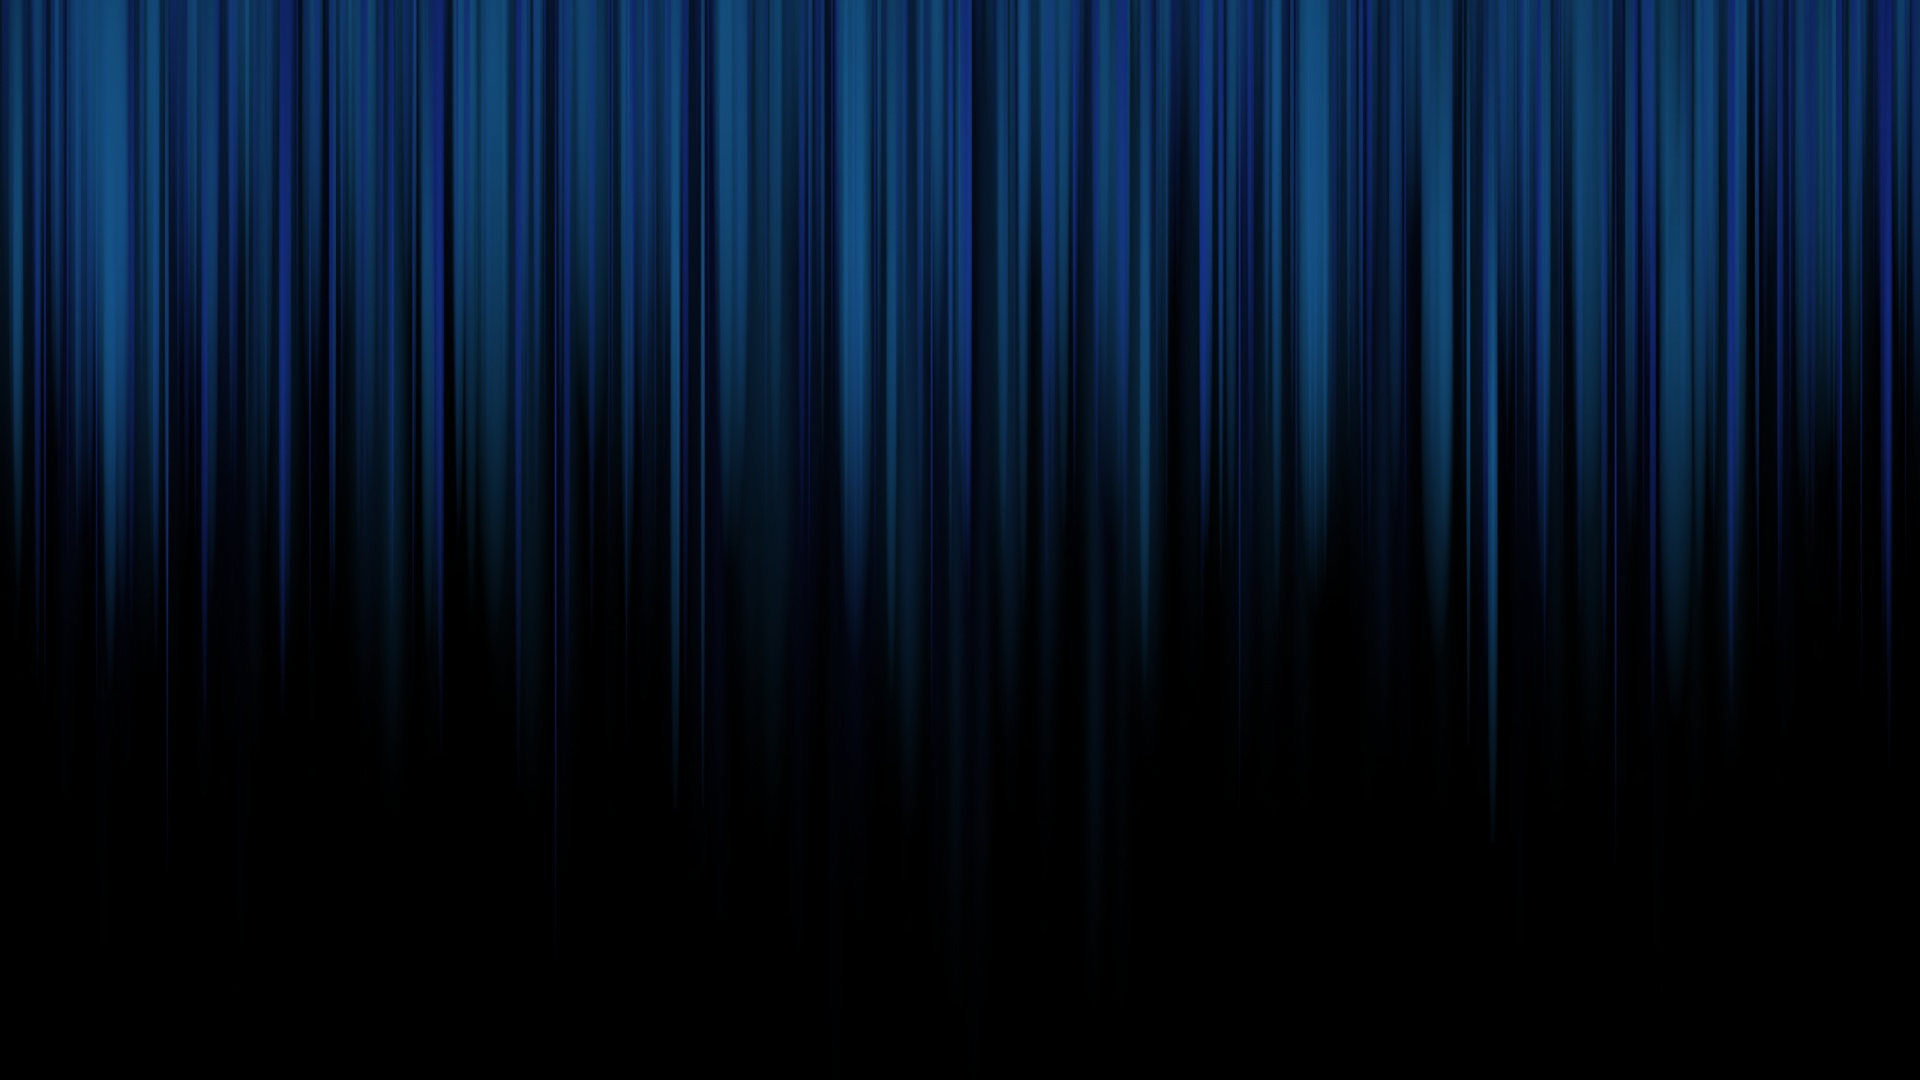 1920x1080 Black and Blue Stripes desktop PC and Mac wallpaper